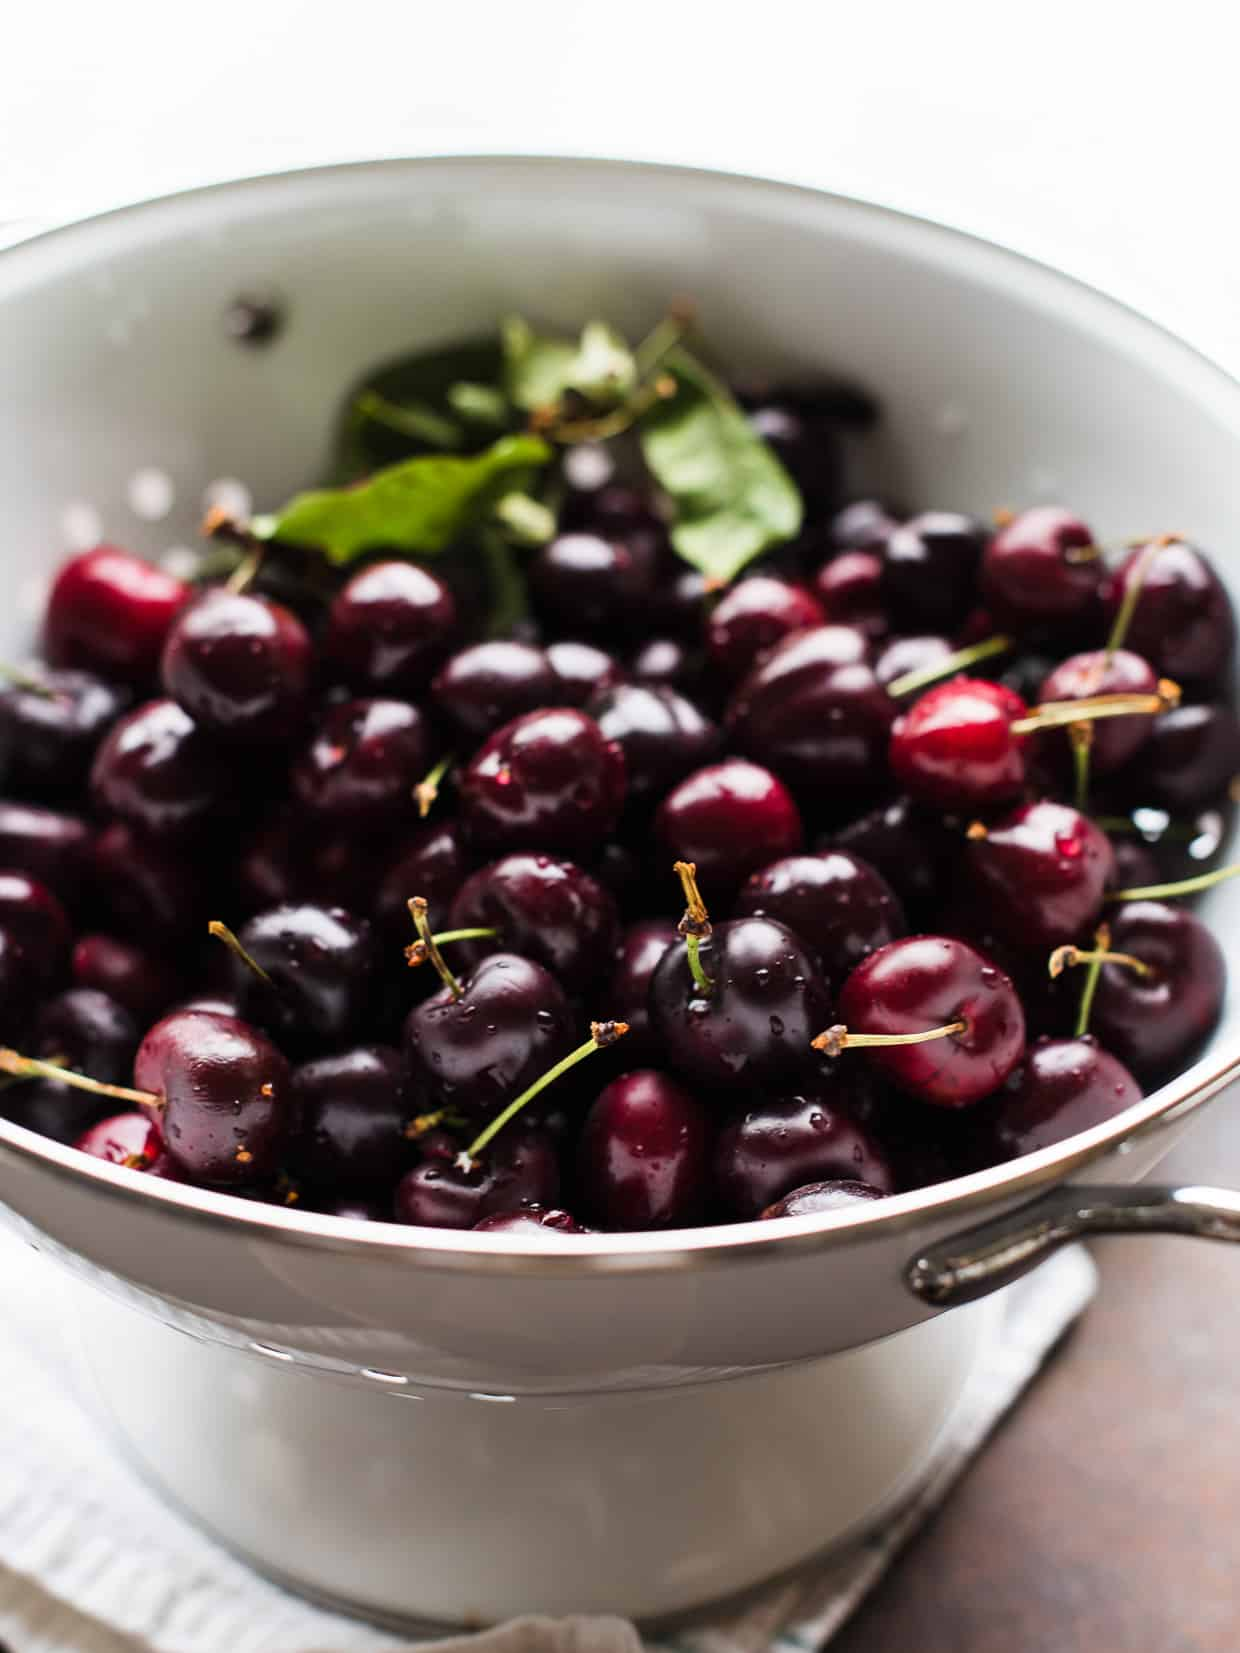 Fresh cherries in a white colander.